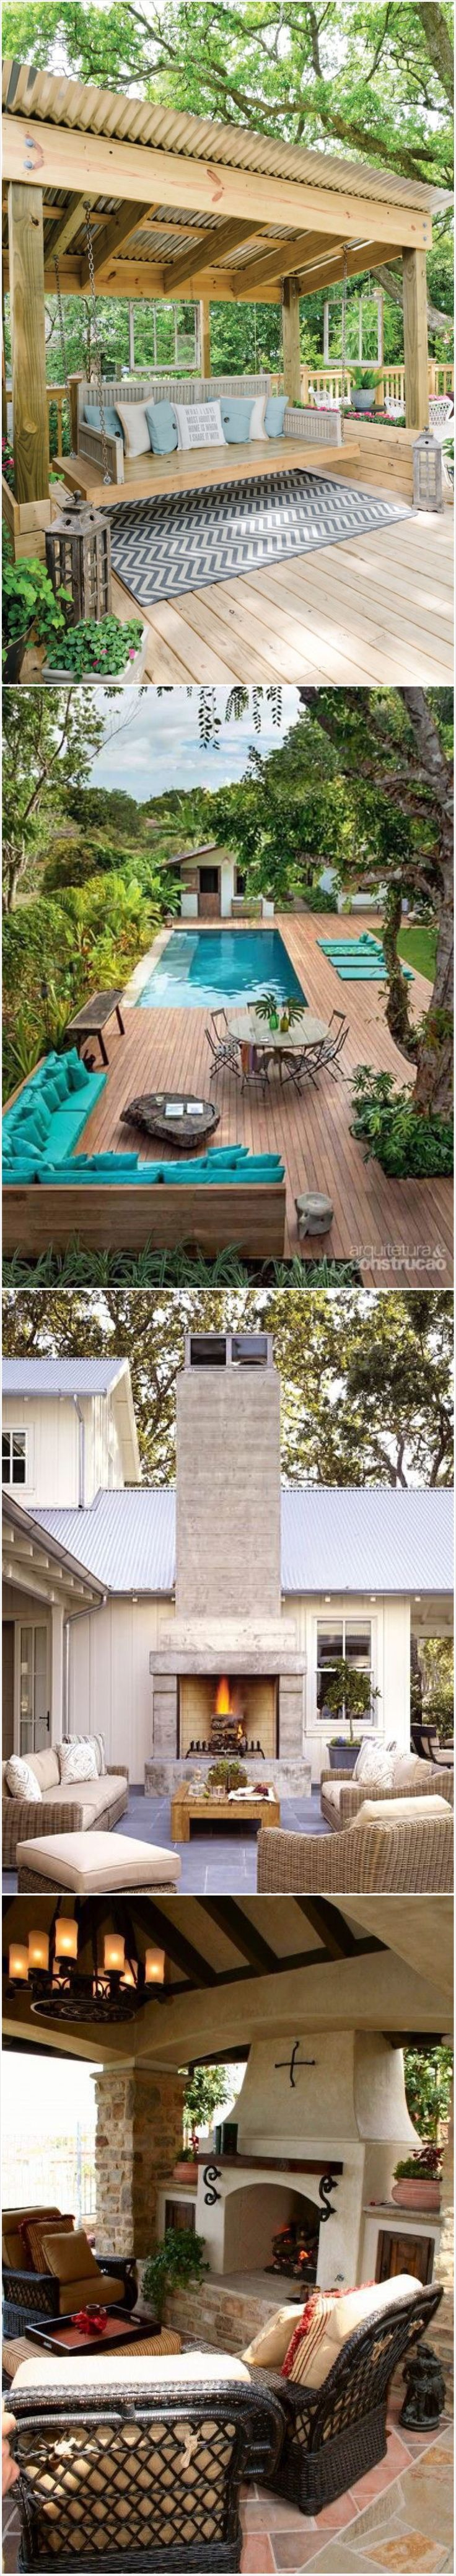 Exceptional outdoor living rooms and spaces with gorgeous landscaping. This is a gorgeous and inspiring gallery full of outdoor space designs. Must see! Read it